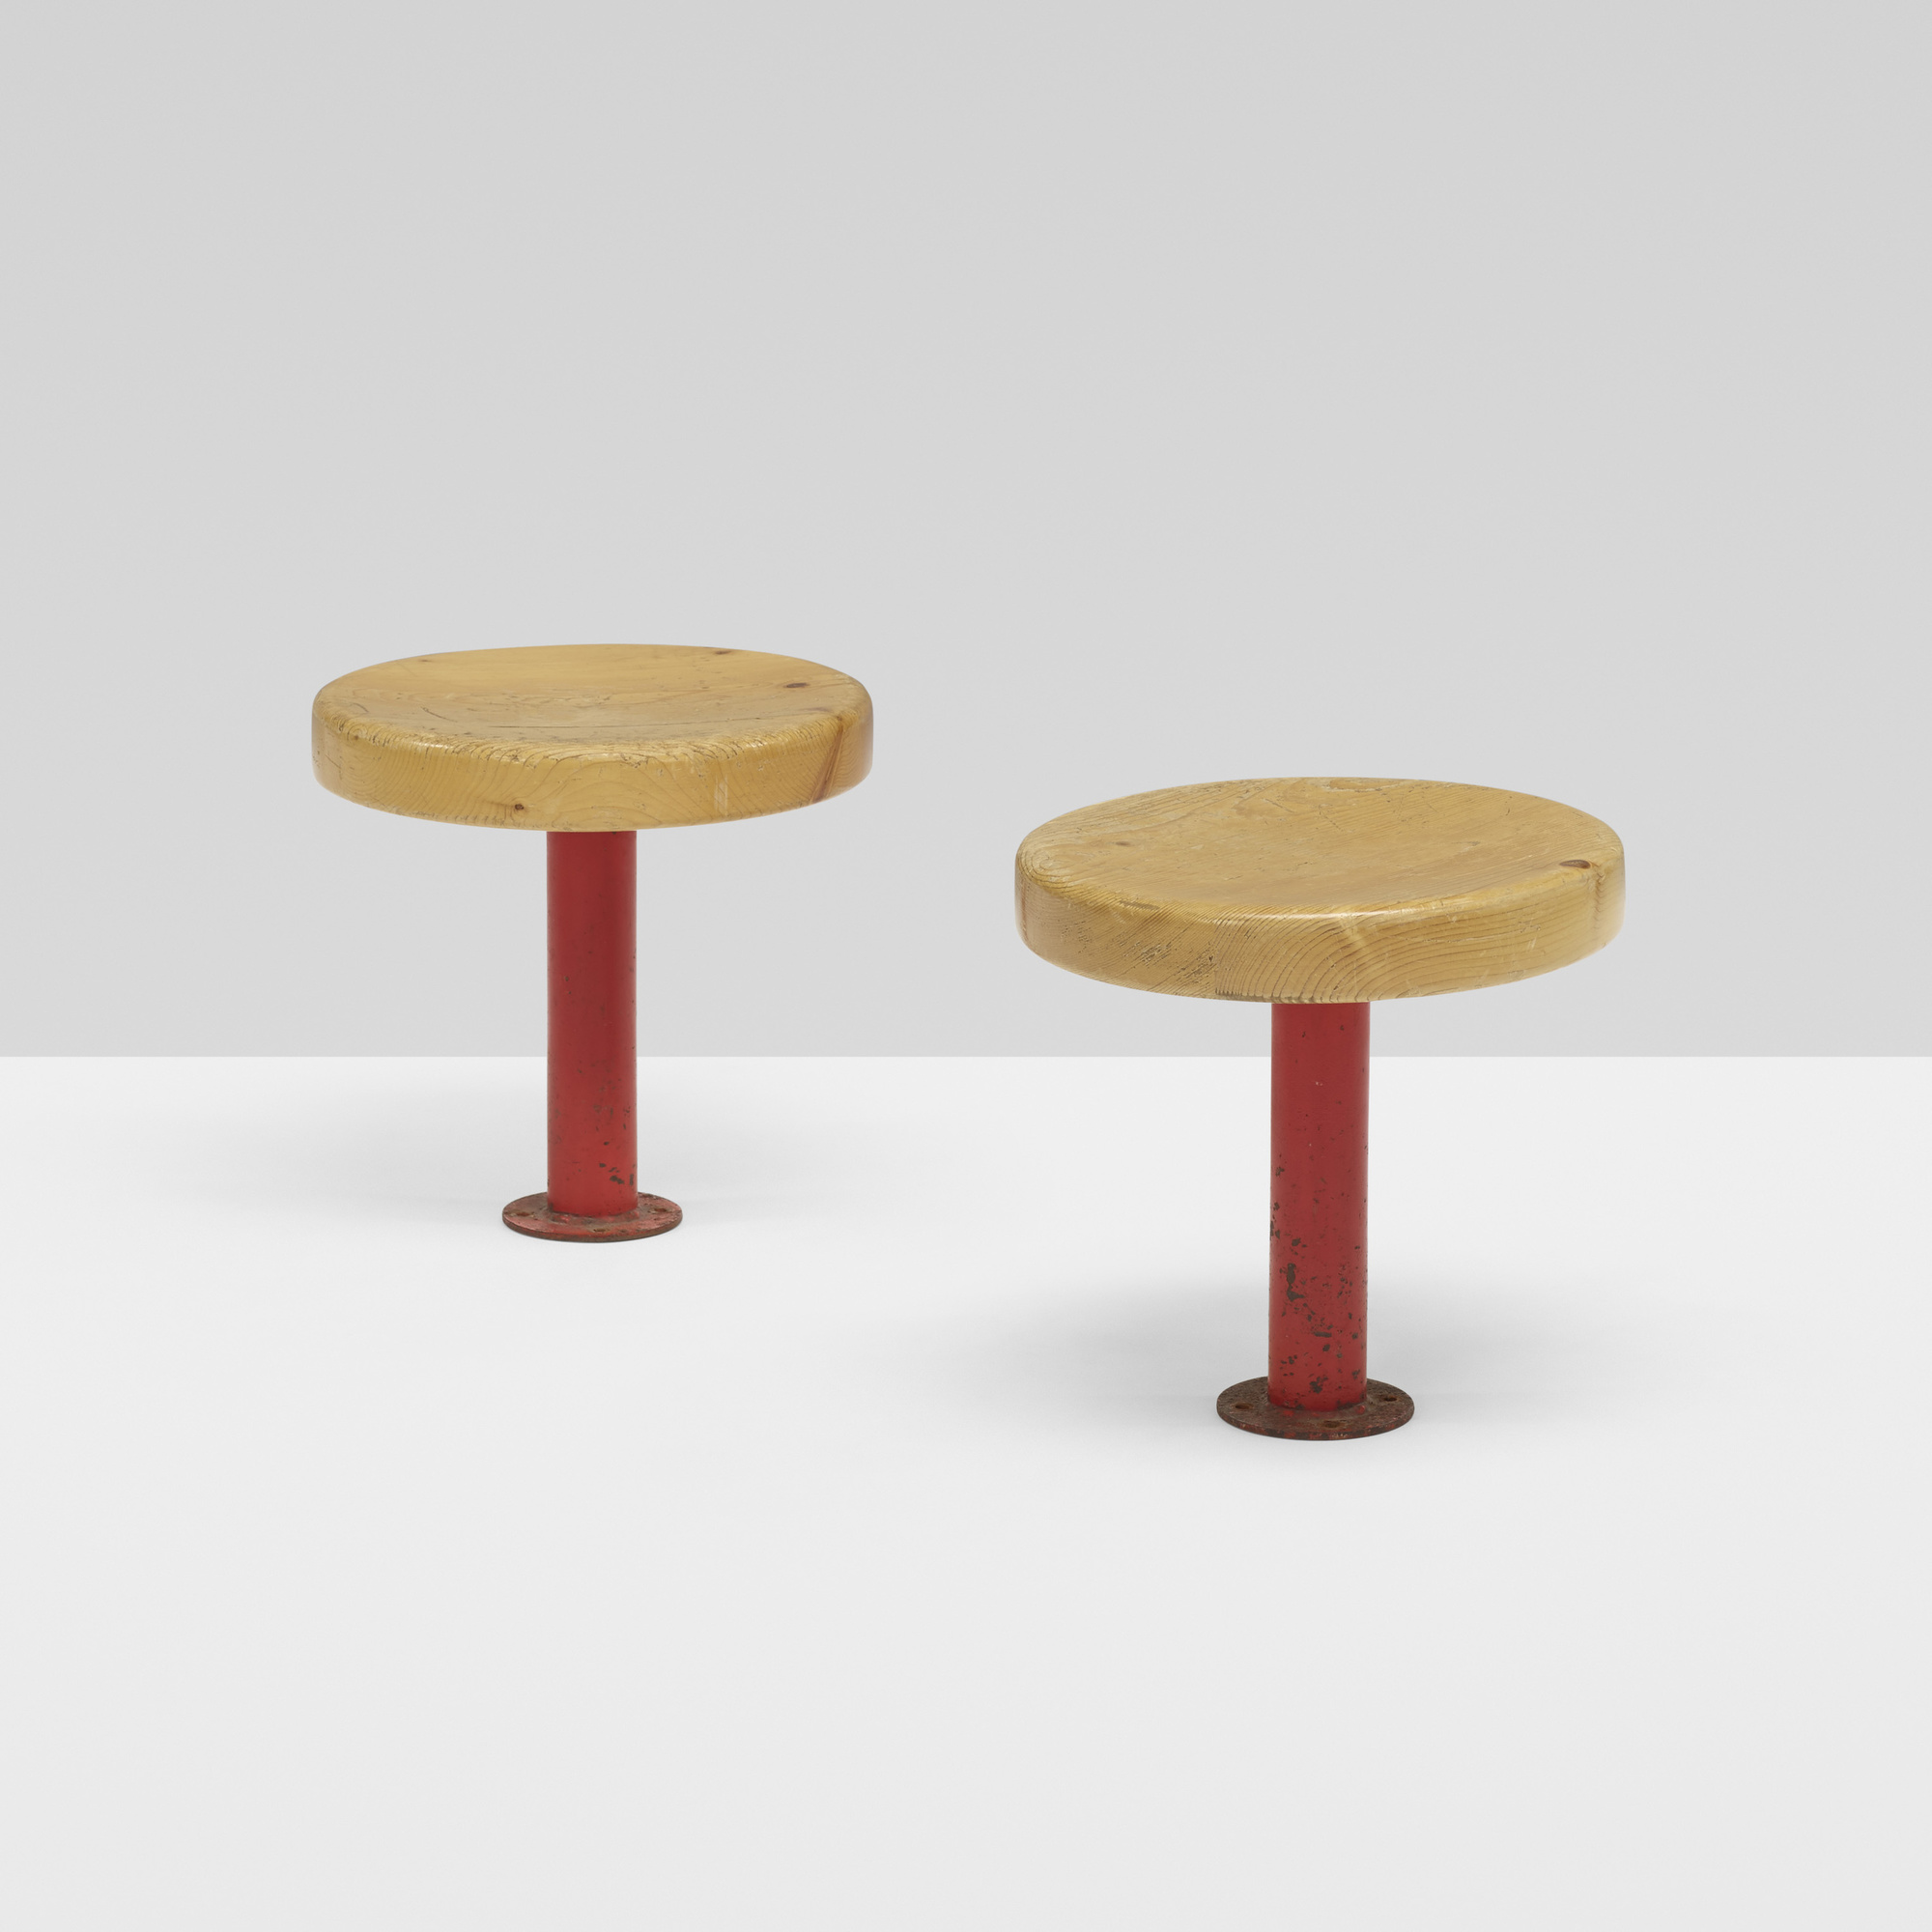 127: Charlotte Perriand / Kindergarten stools from Les Arcs, pair (1 of 2)